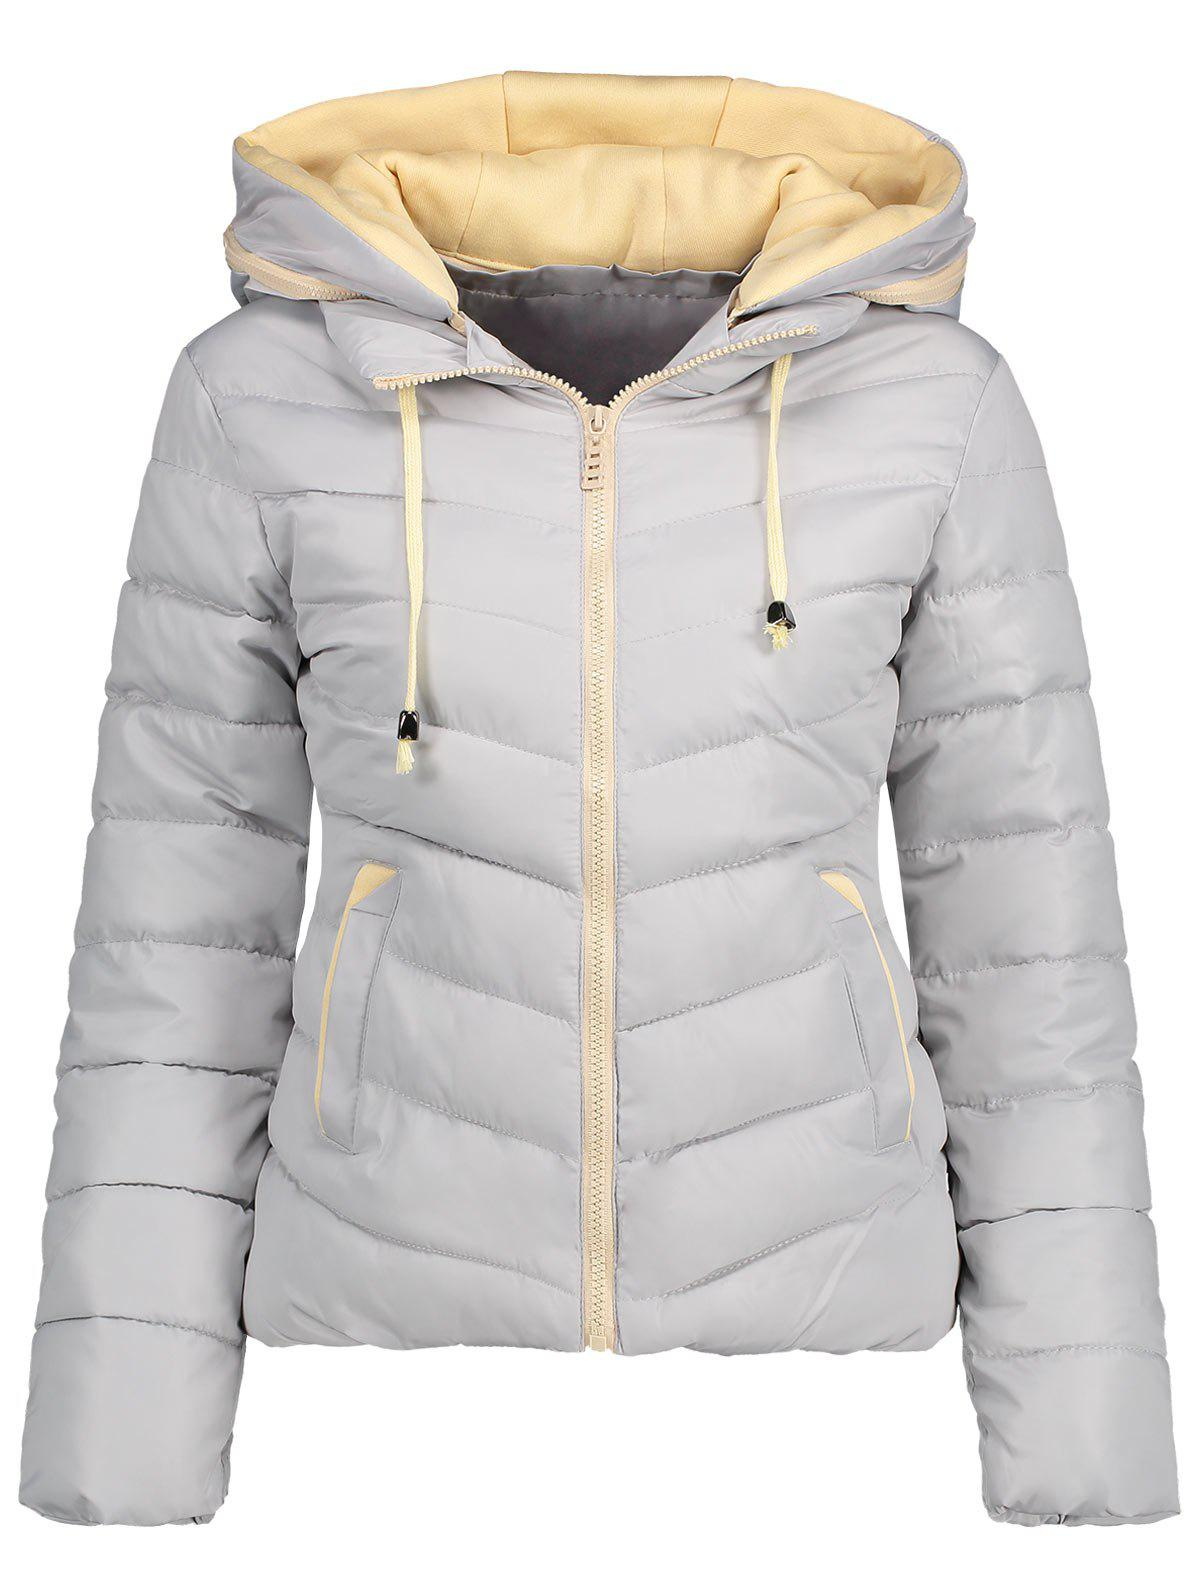 Hooded Drawstring Quilted Jacket - GRAY 2XL